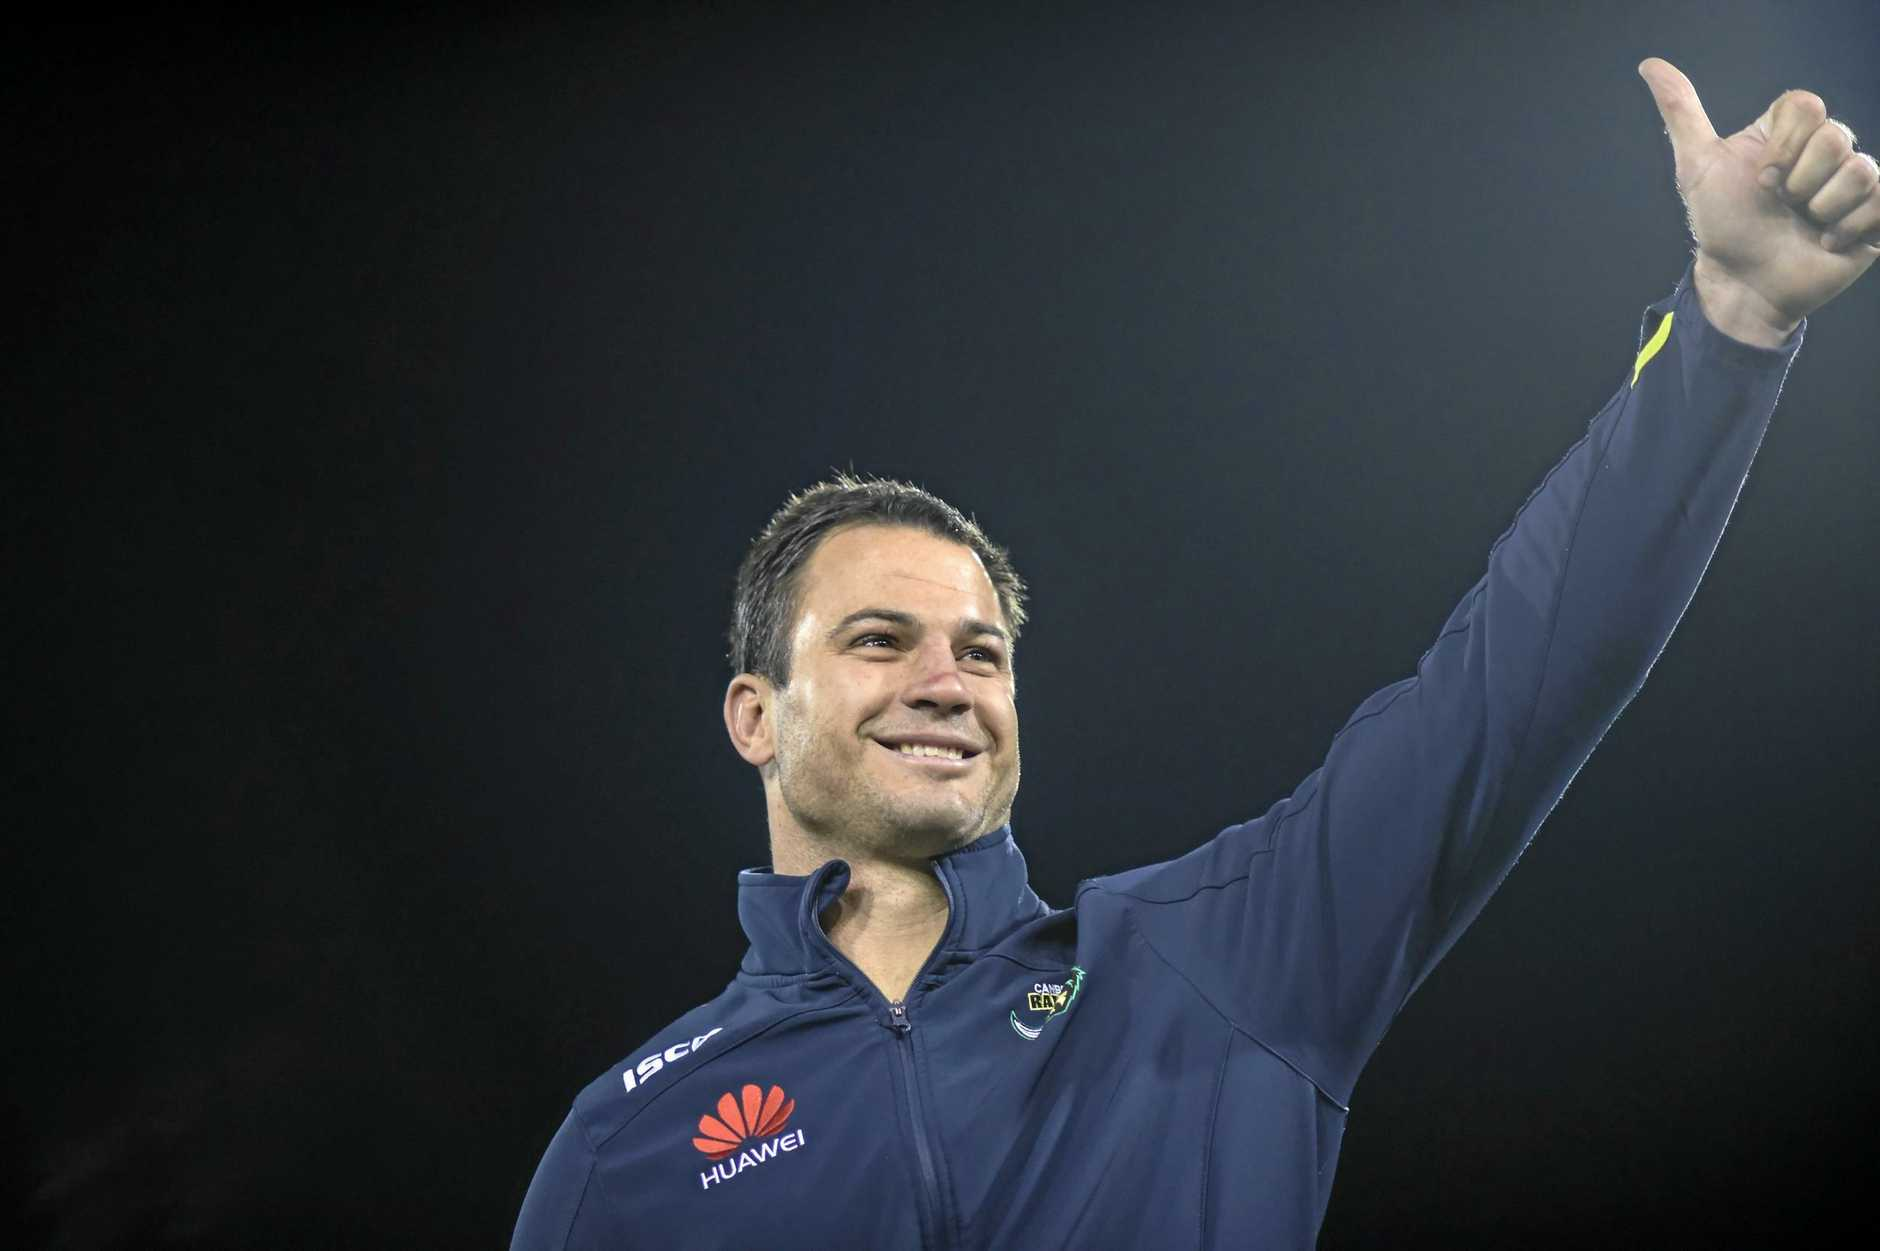 David Shillington of the Raiders acknowledges the crowd after the Round 25 NRL match between the Canberra Raiders and the Penrith Panthers at GIO Stadium in Canberra, Monday, Aug. 31, 2015. (AAP Image/Lukas Coch) NO ARCHIVING, EDITORIAL USE ONLY